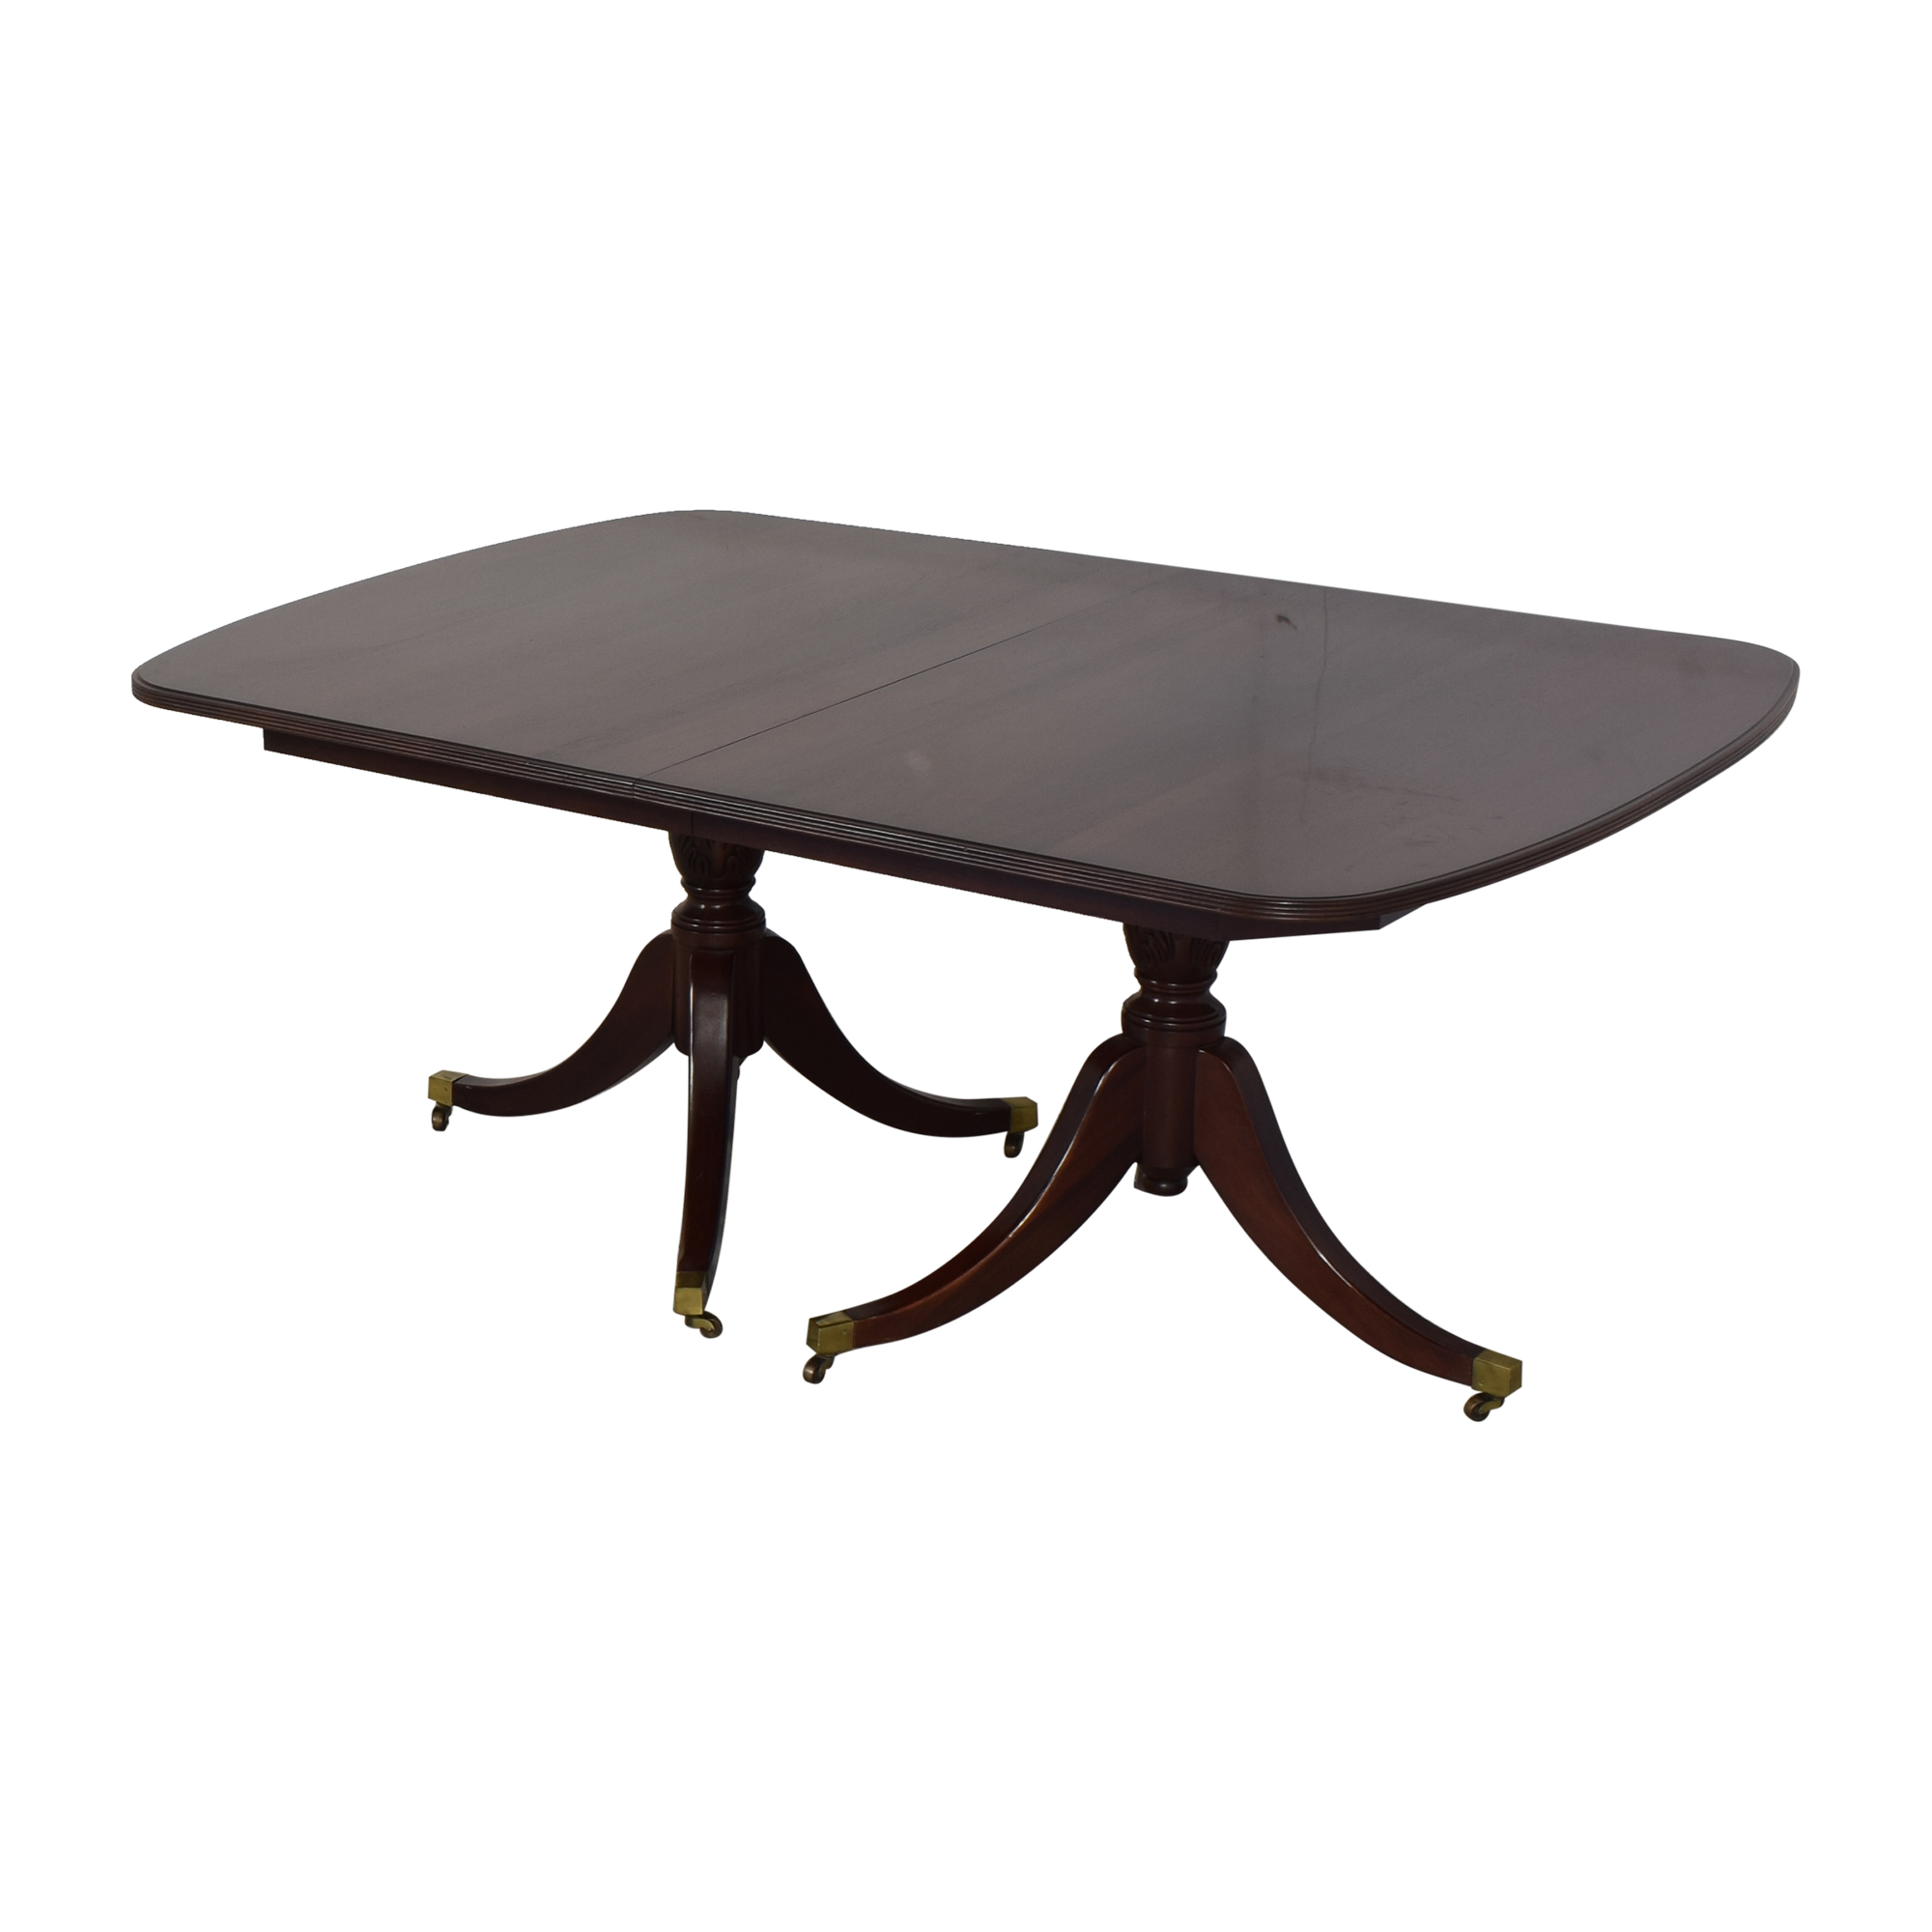 Davis Cabinet Company Davis Cabinet Company Dining Room Table pa